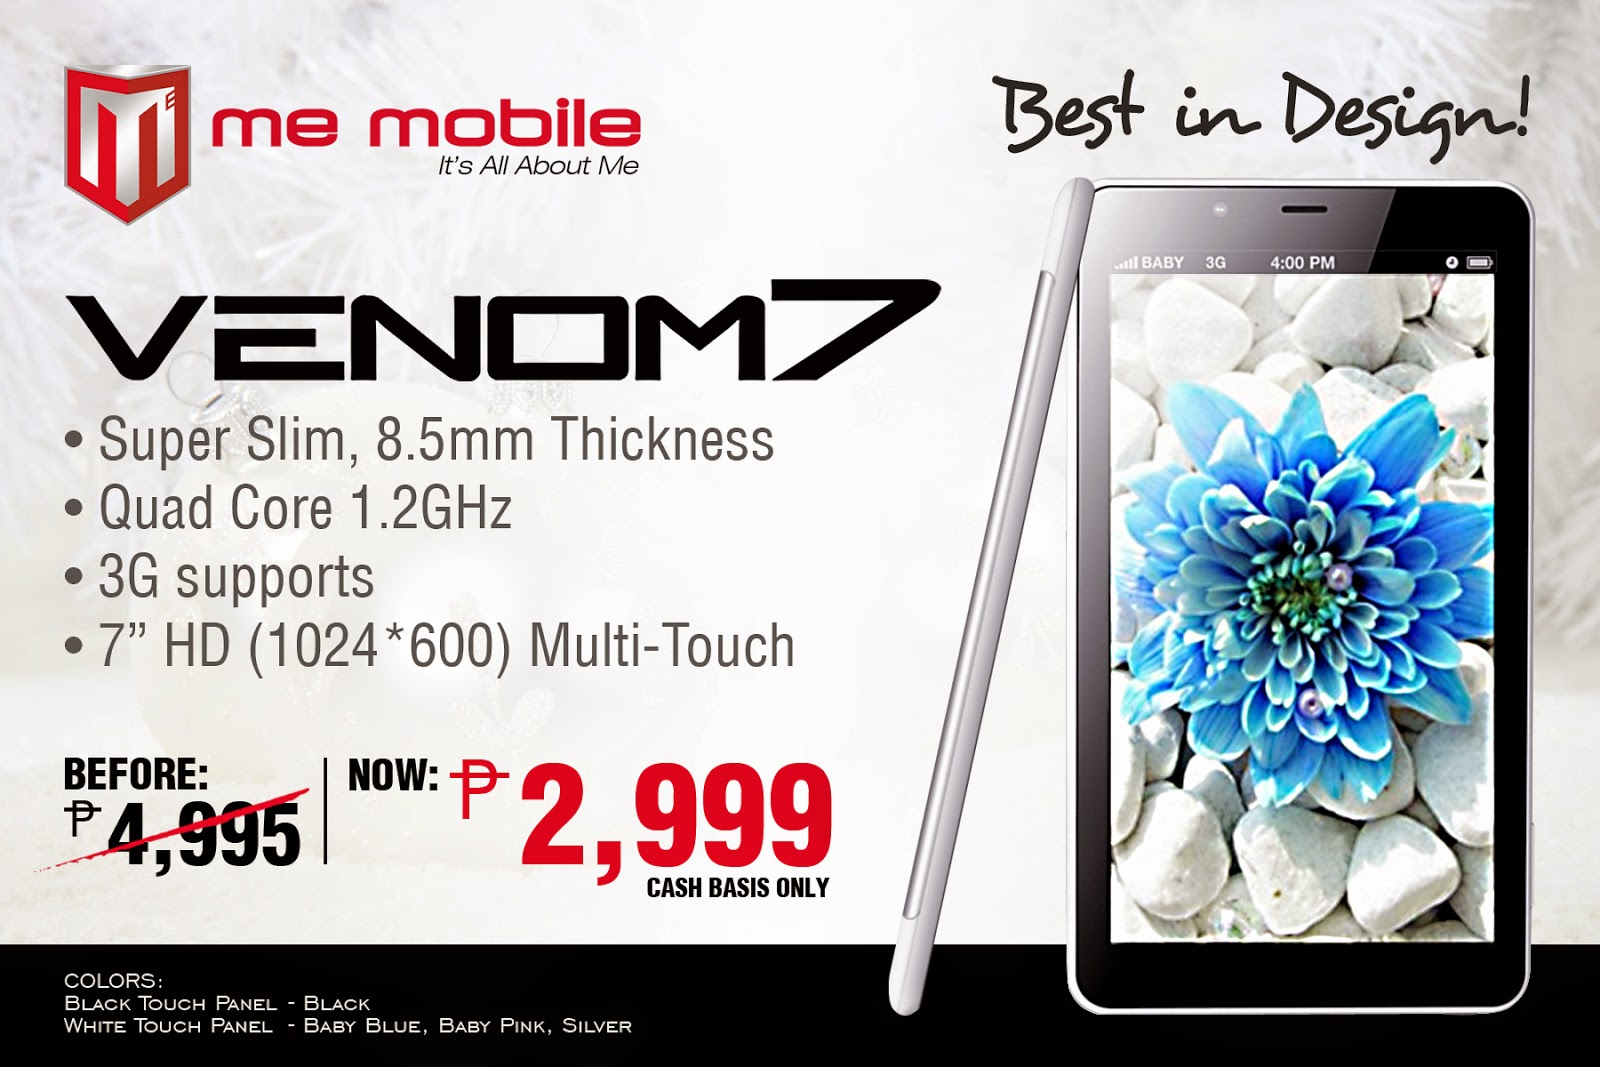 "7"" Quad-core Me Mobile Venom 7 Tablet On Sale for P2,999, 40% Off"